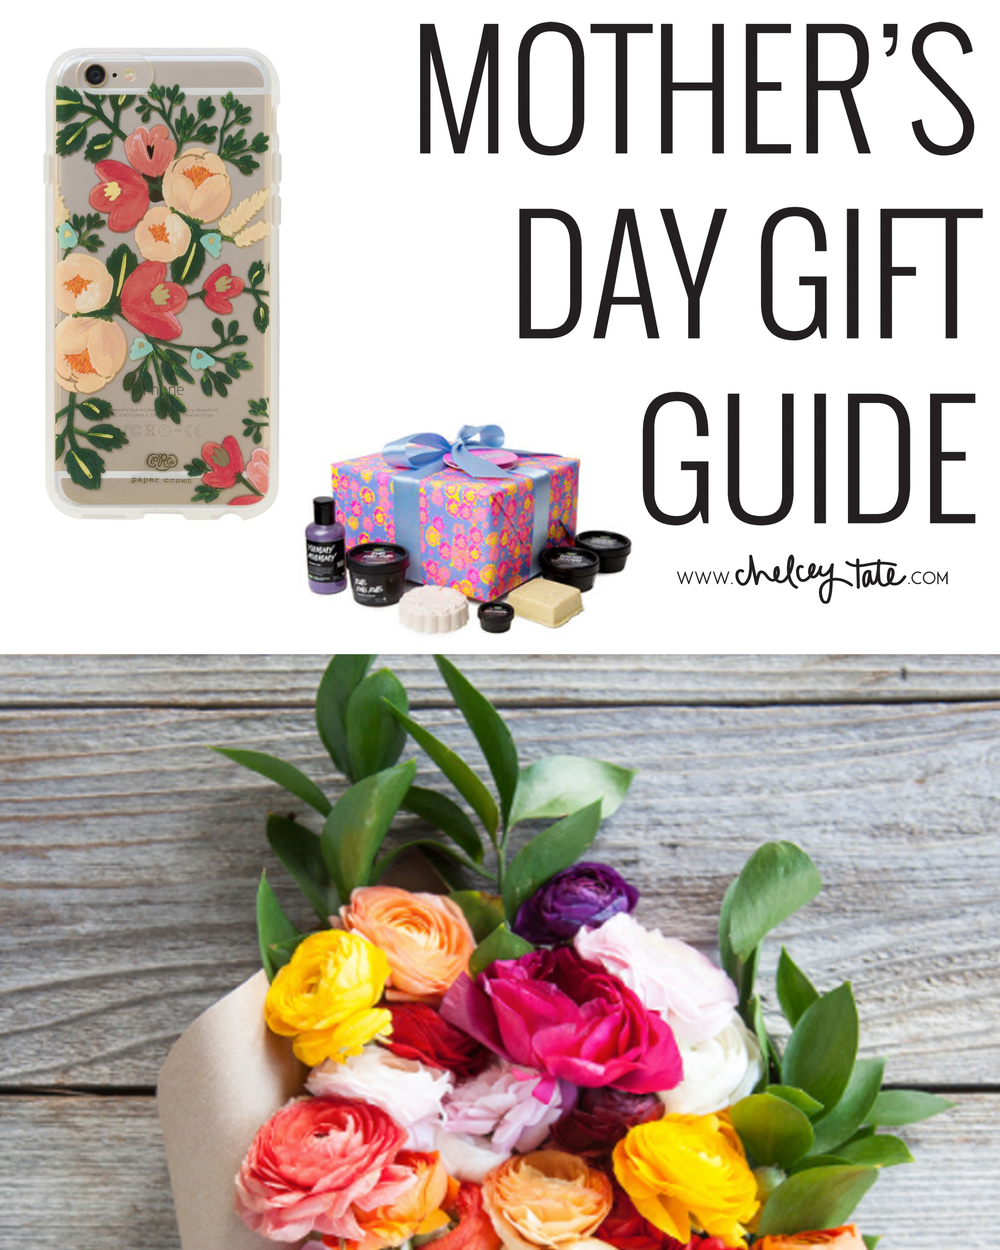 Mother's Day Gift Guide by Chelcey Tate on chelceytate.com